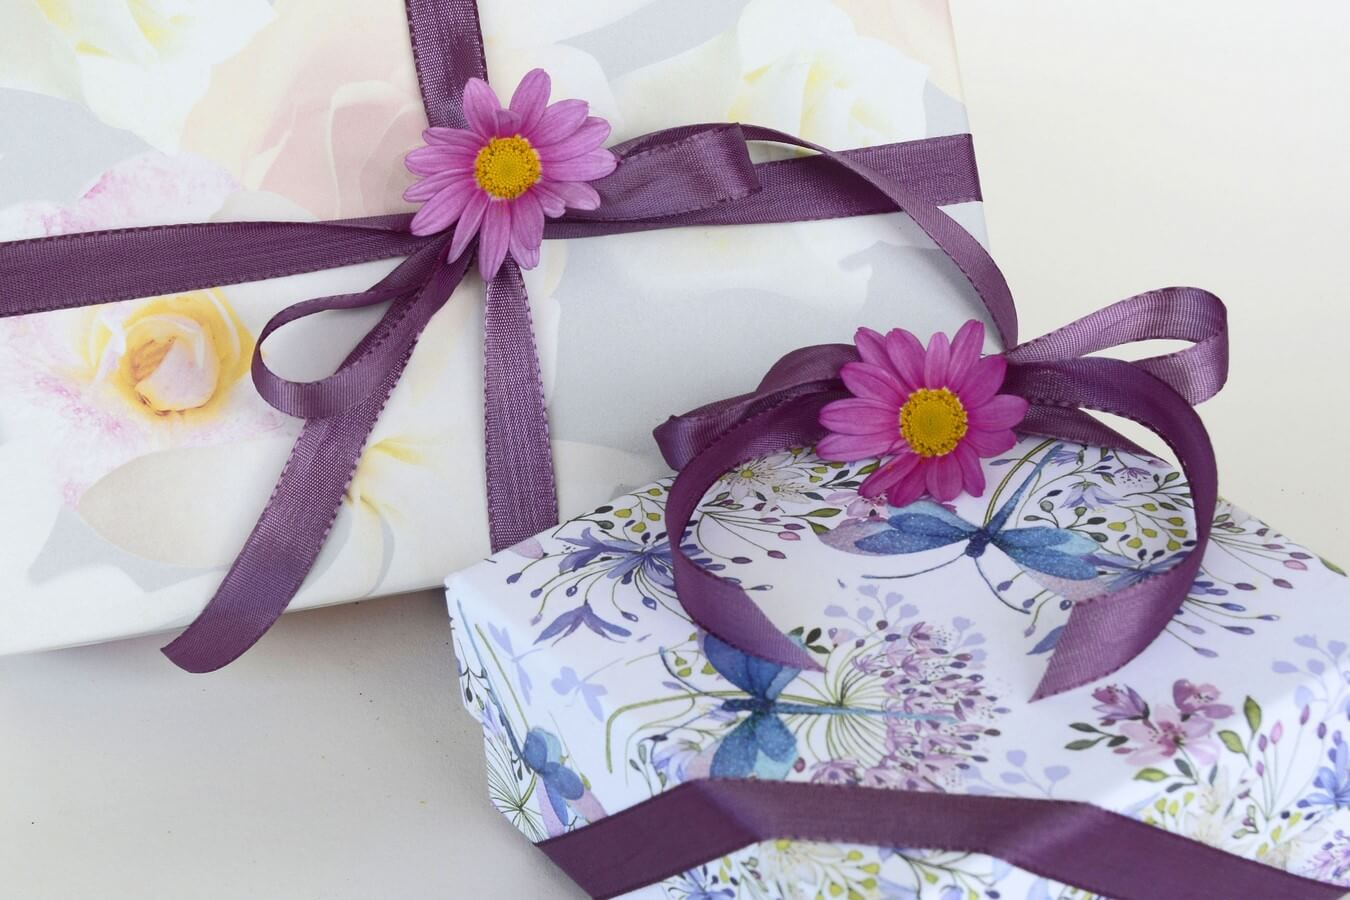 Send Gifts in Israel - Gift Baskets for Her